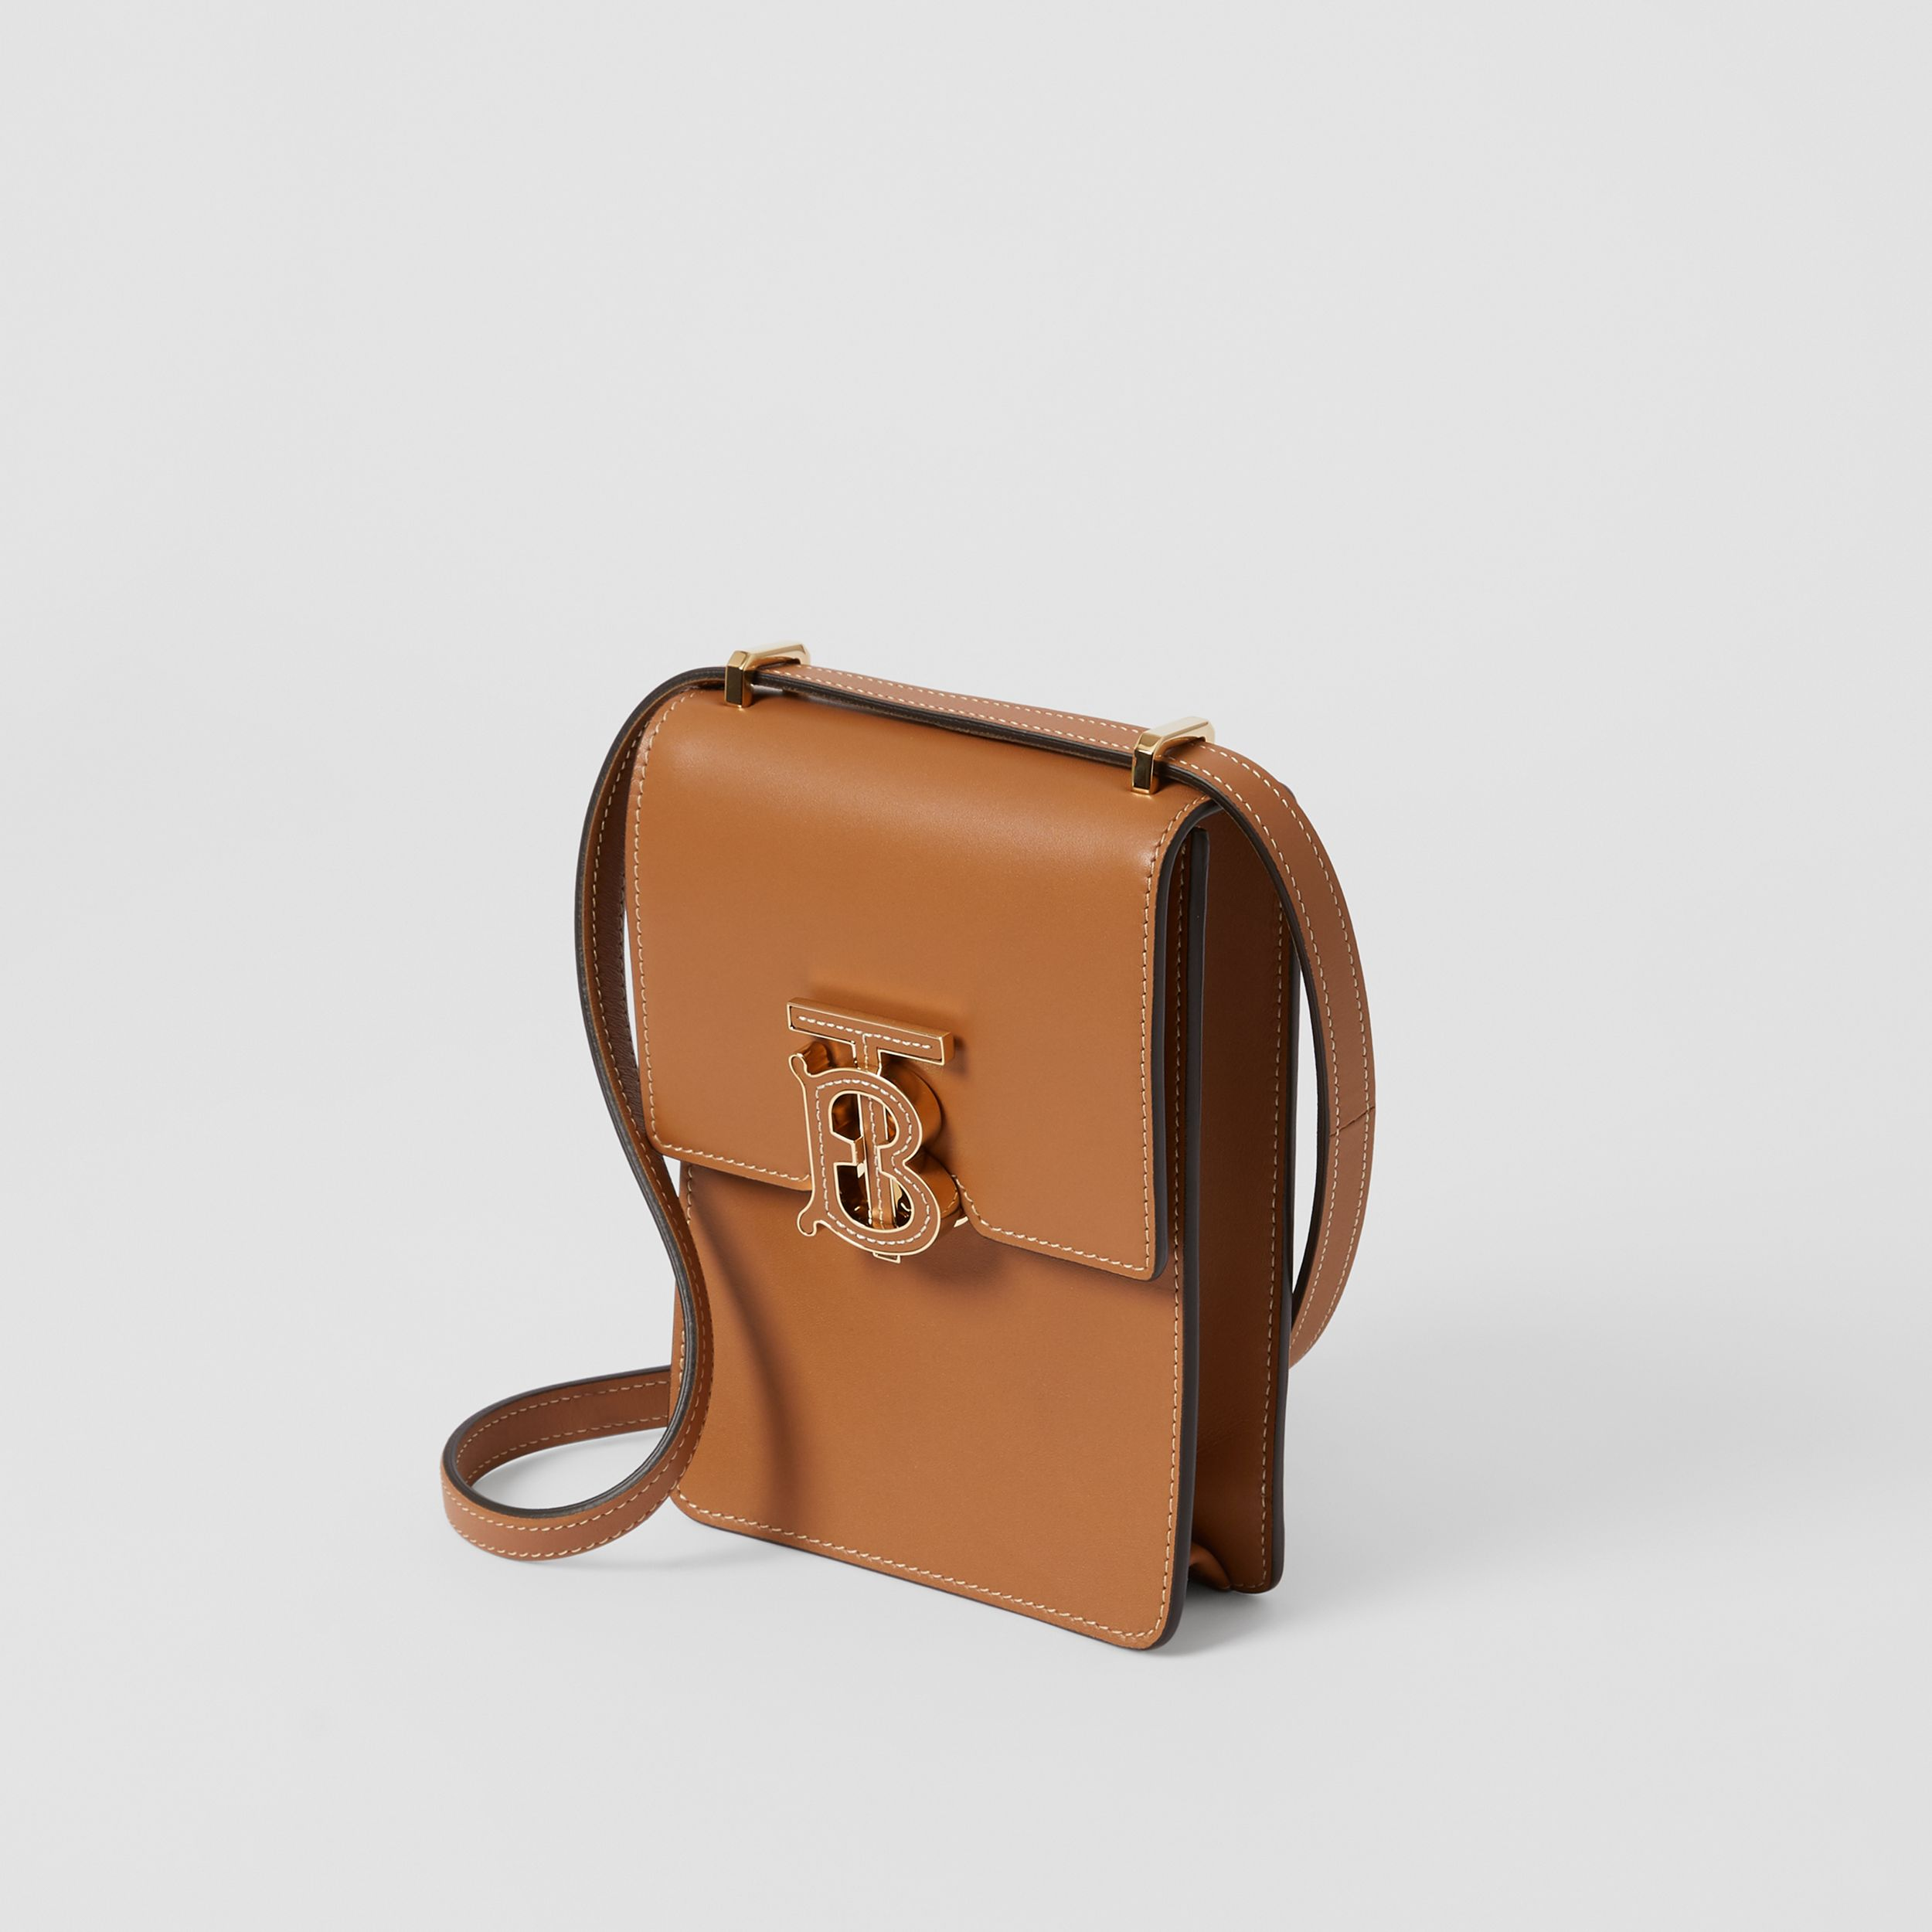 Topstitched Leather Robin Bag in Maple Brown - Women | Burberry - 4